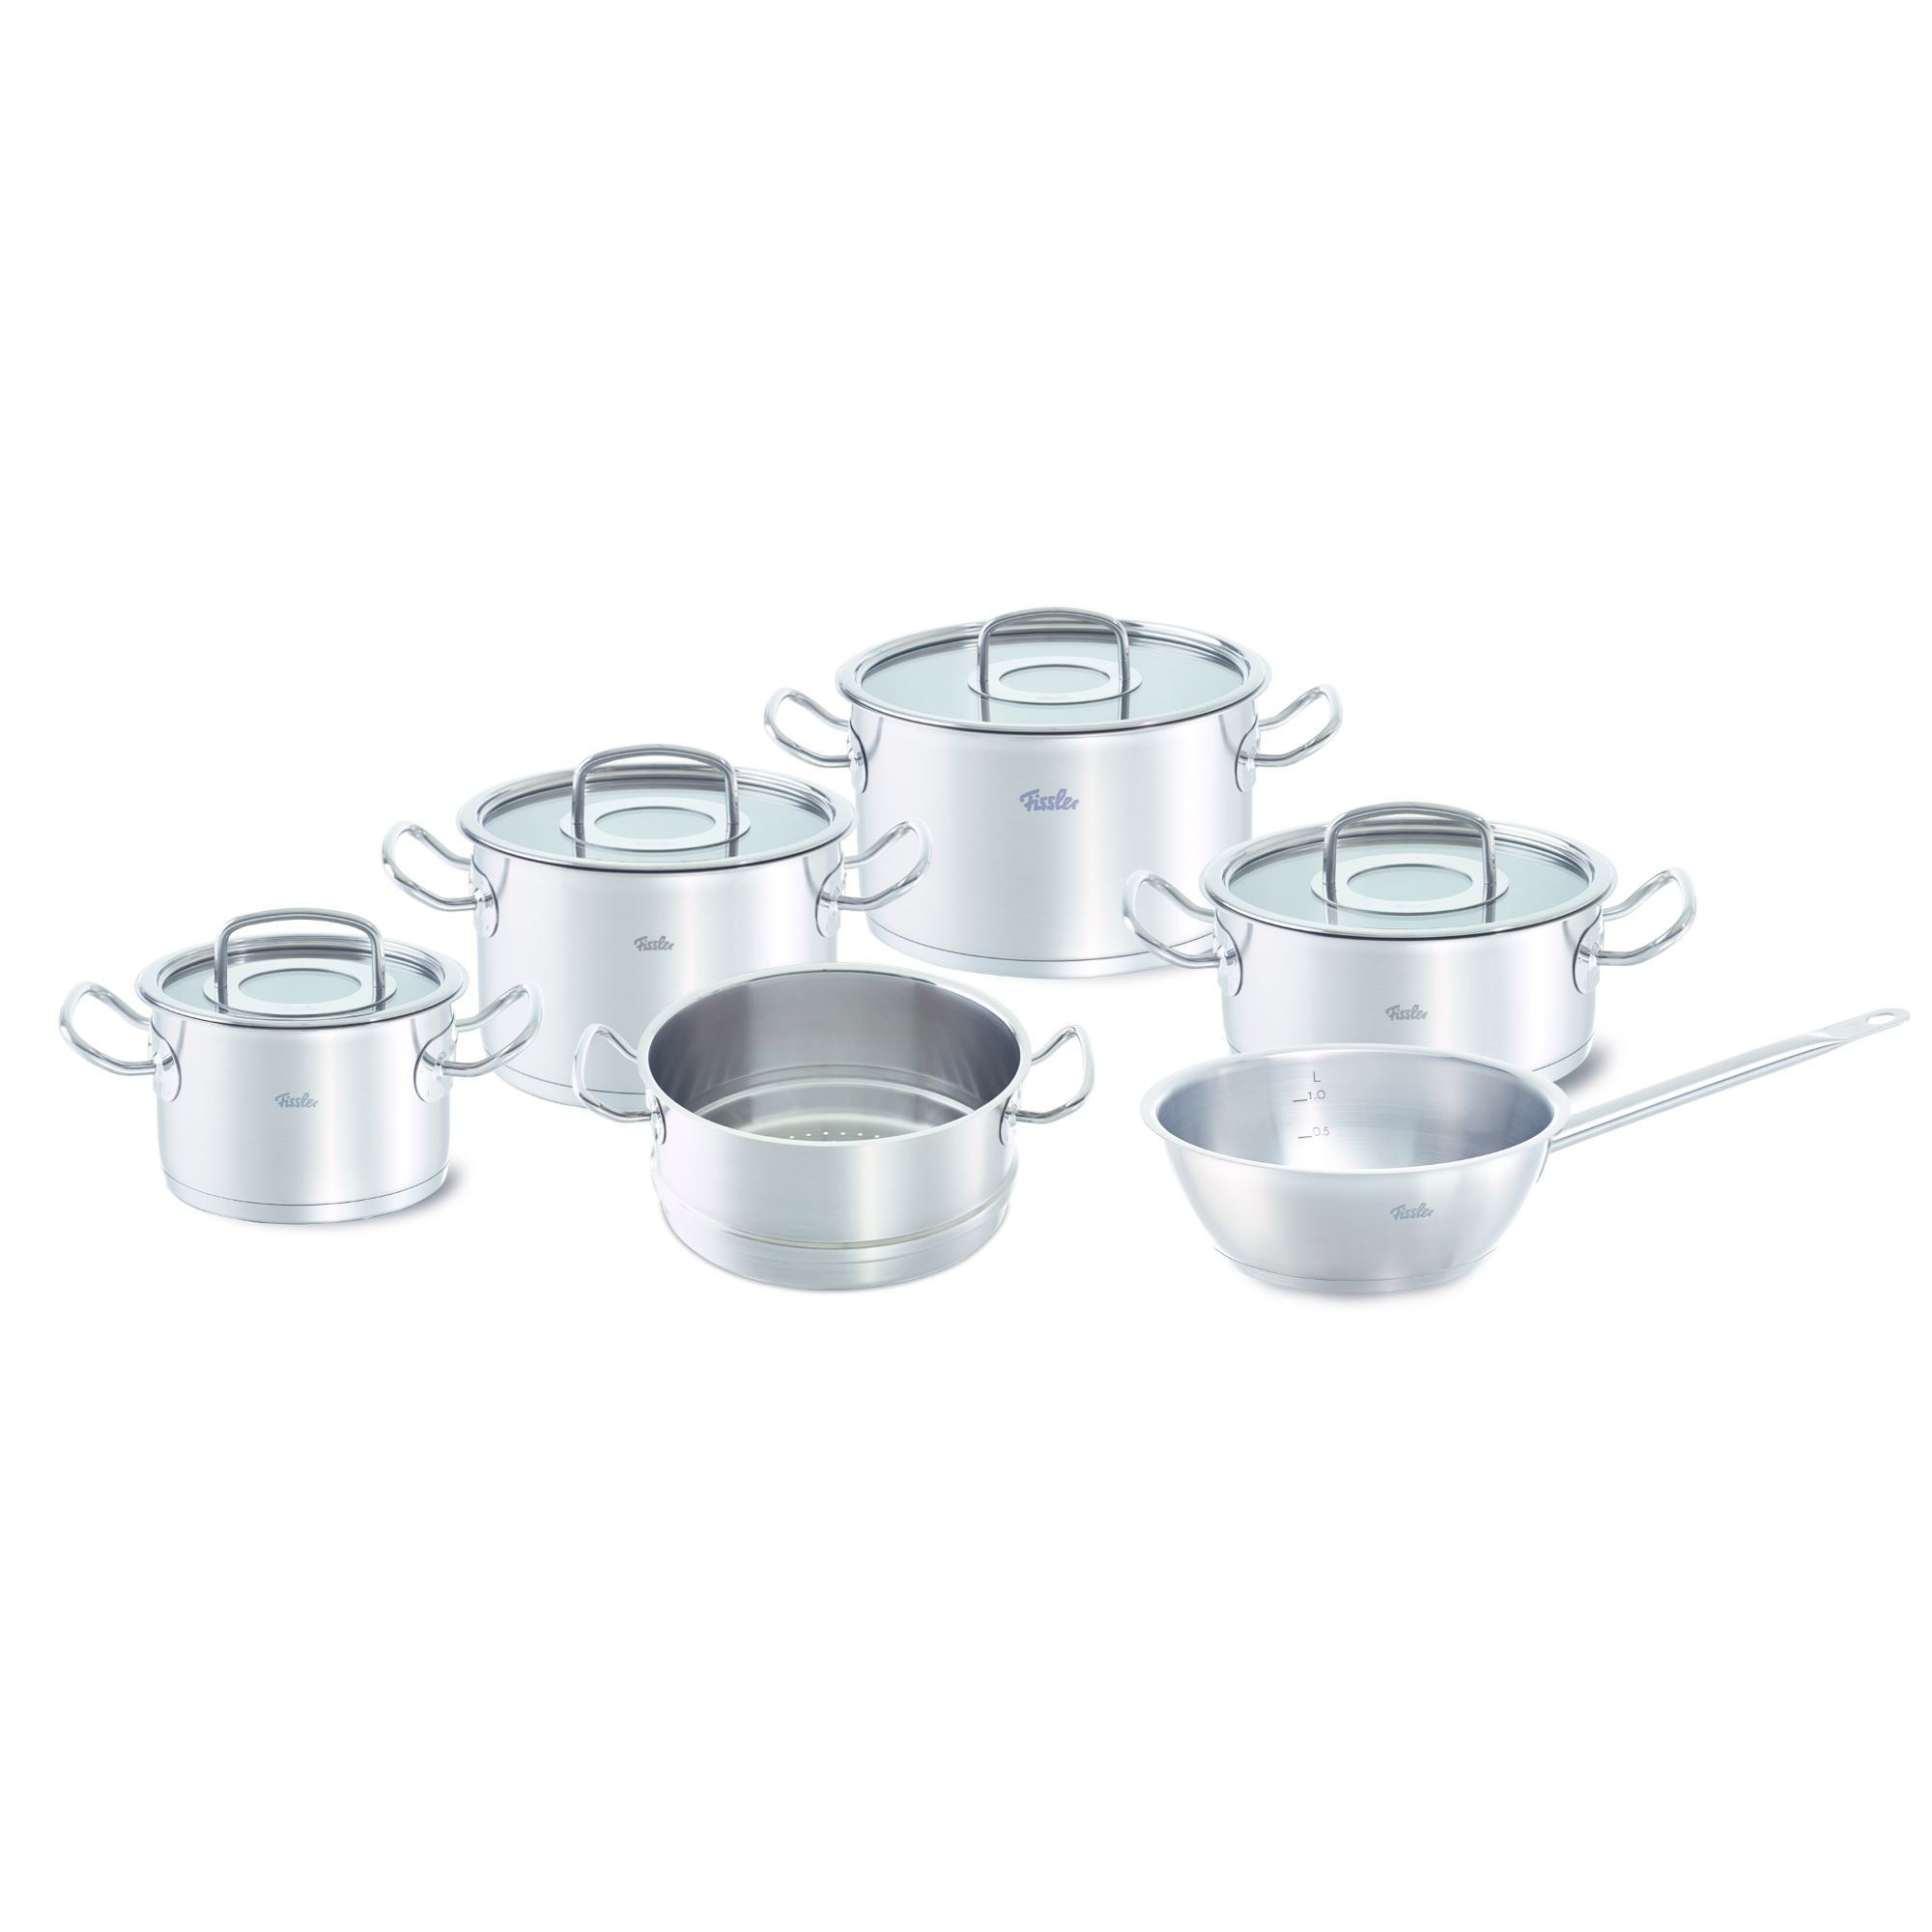 Fissler Profi Collection Set Fissler Topf Set Original Profi Collection 6 Teilig Mit